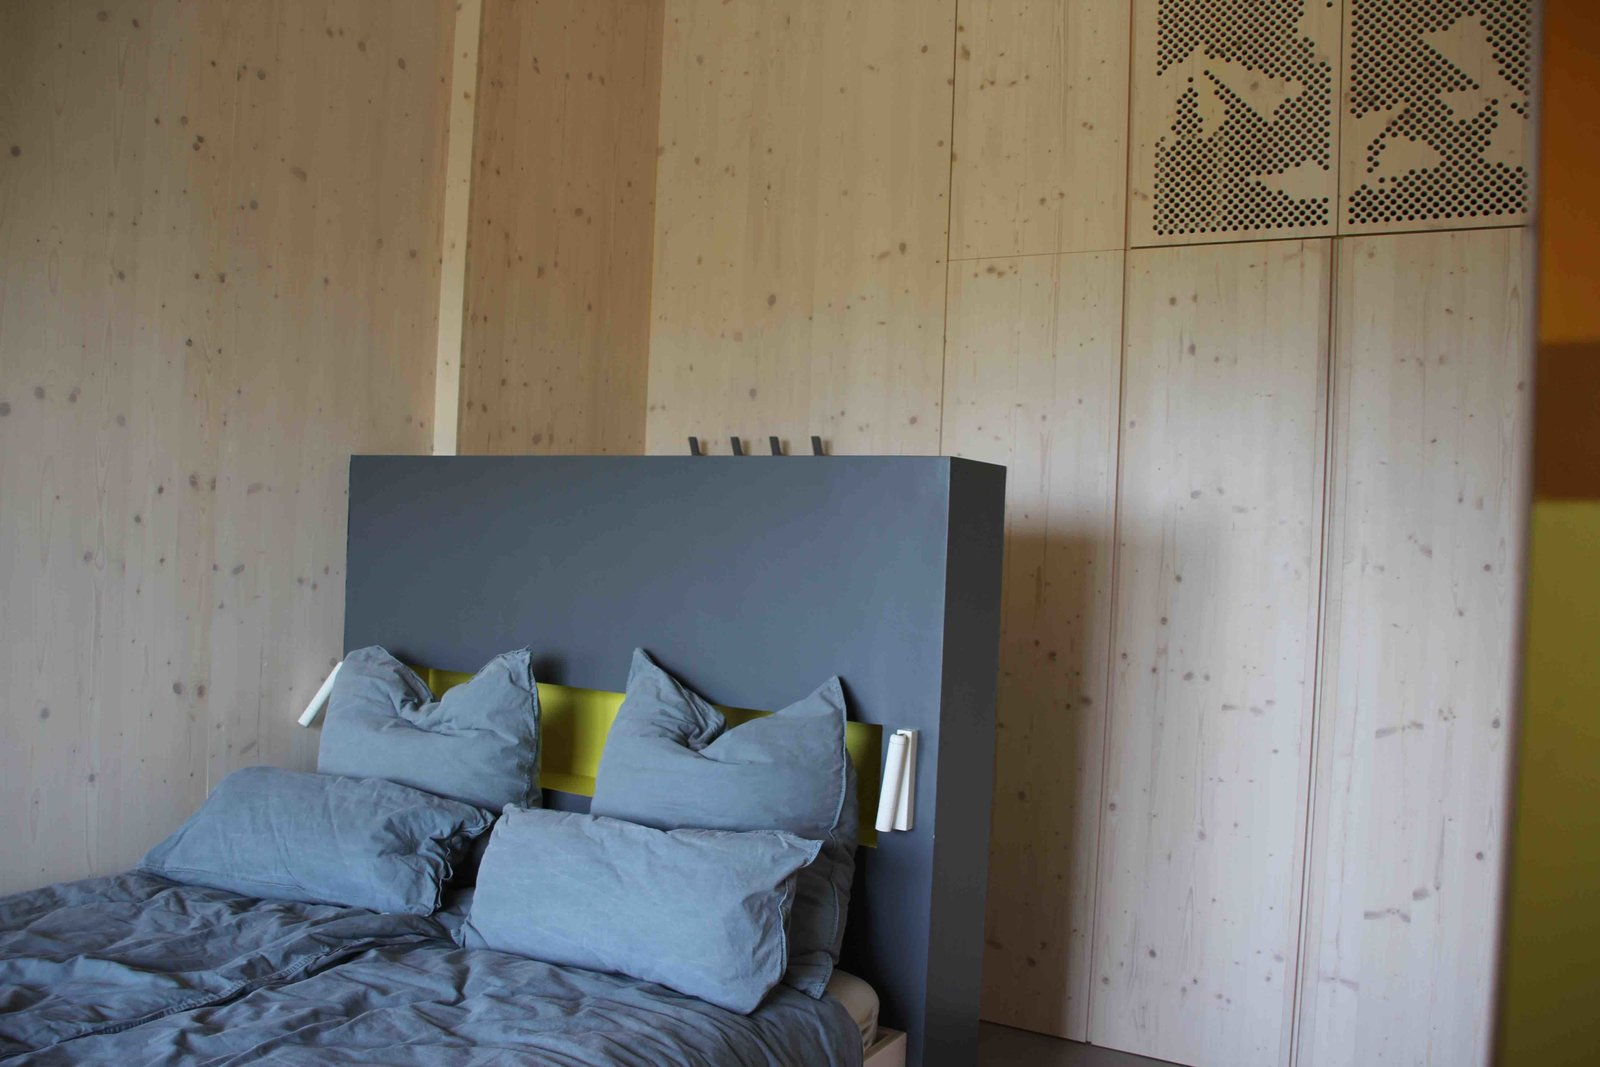 Photo 11 of 14 in This Eco-Friendly Bed-and-Breakfast in Italy Is the Perfect Indoor/Outdoor Escape